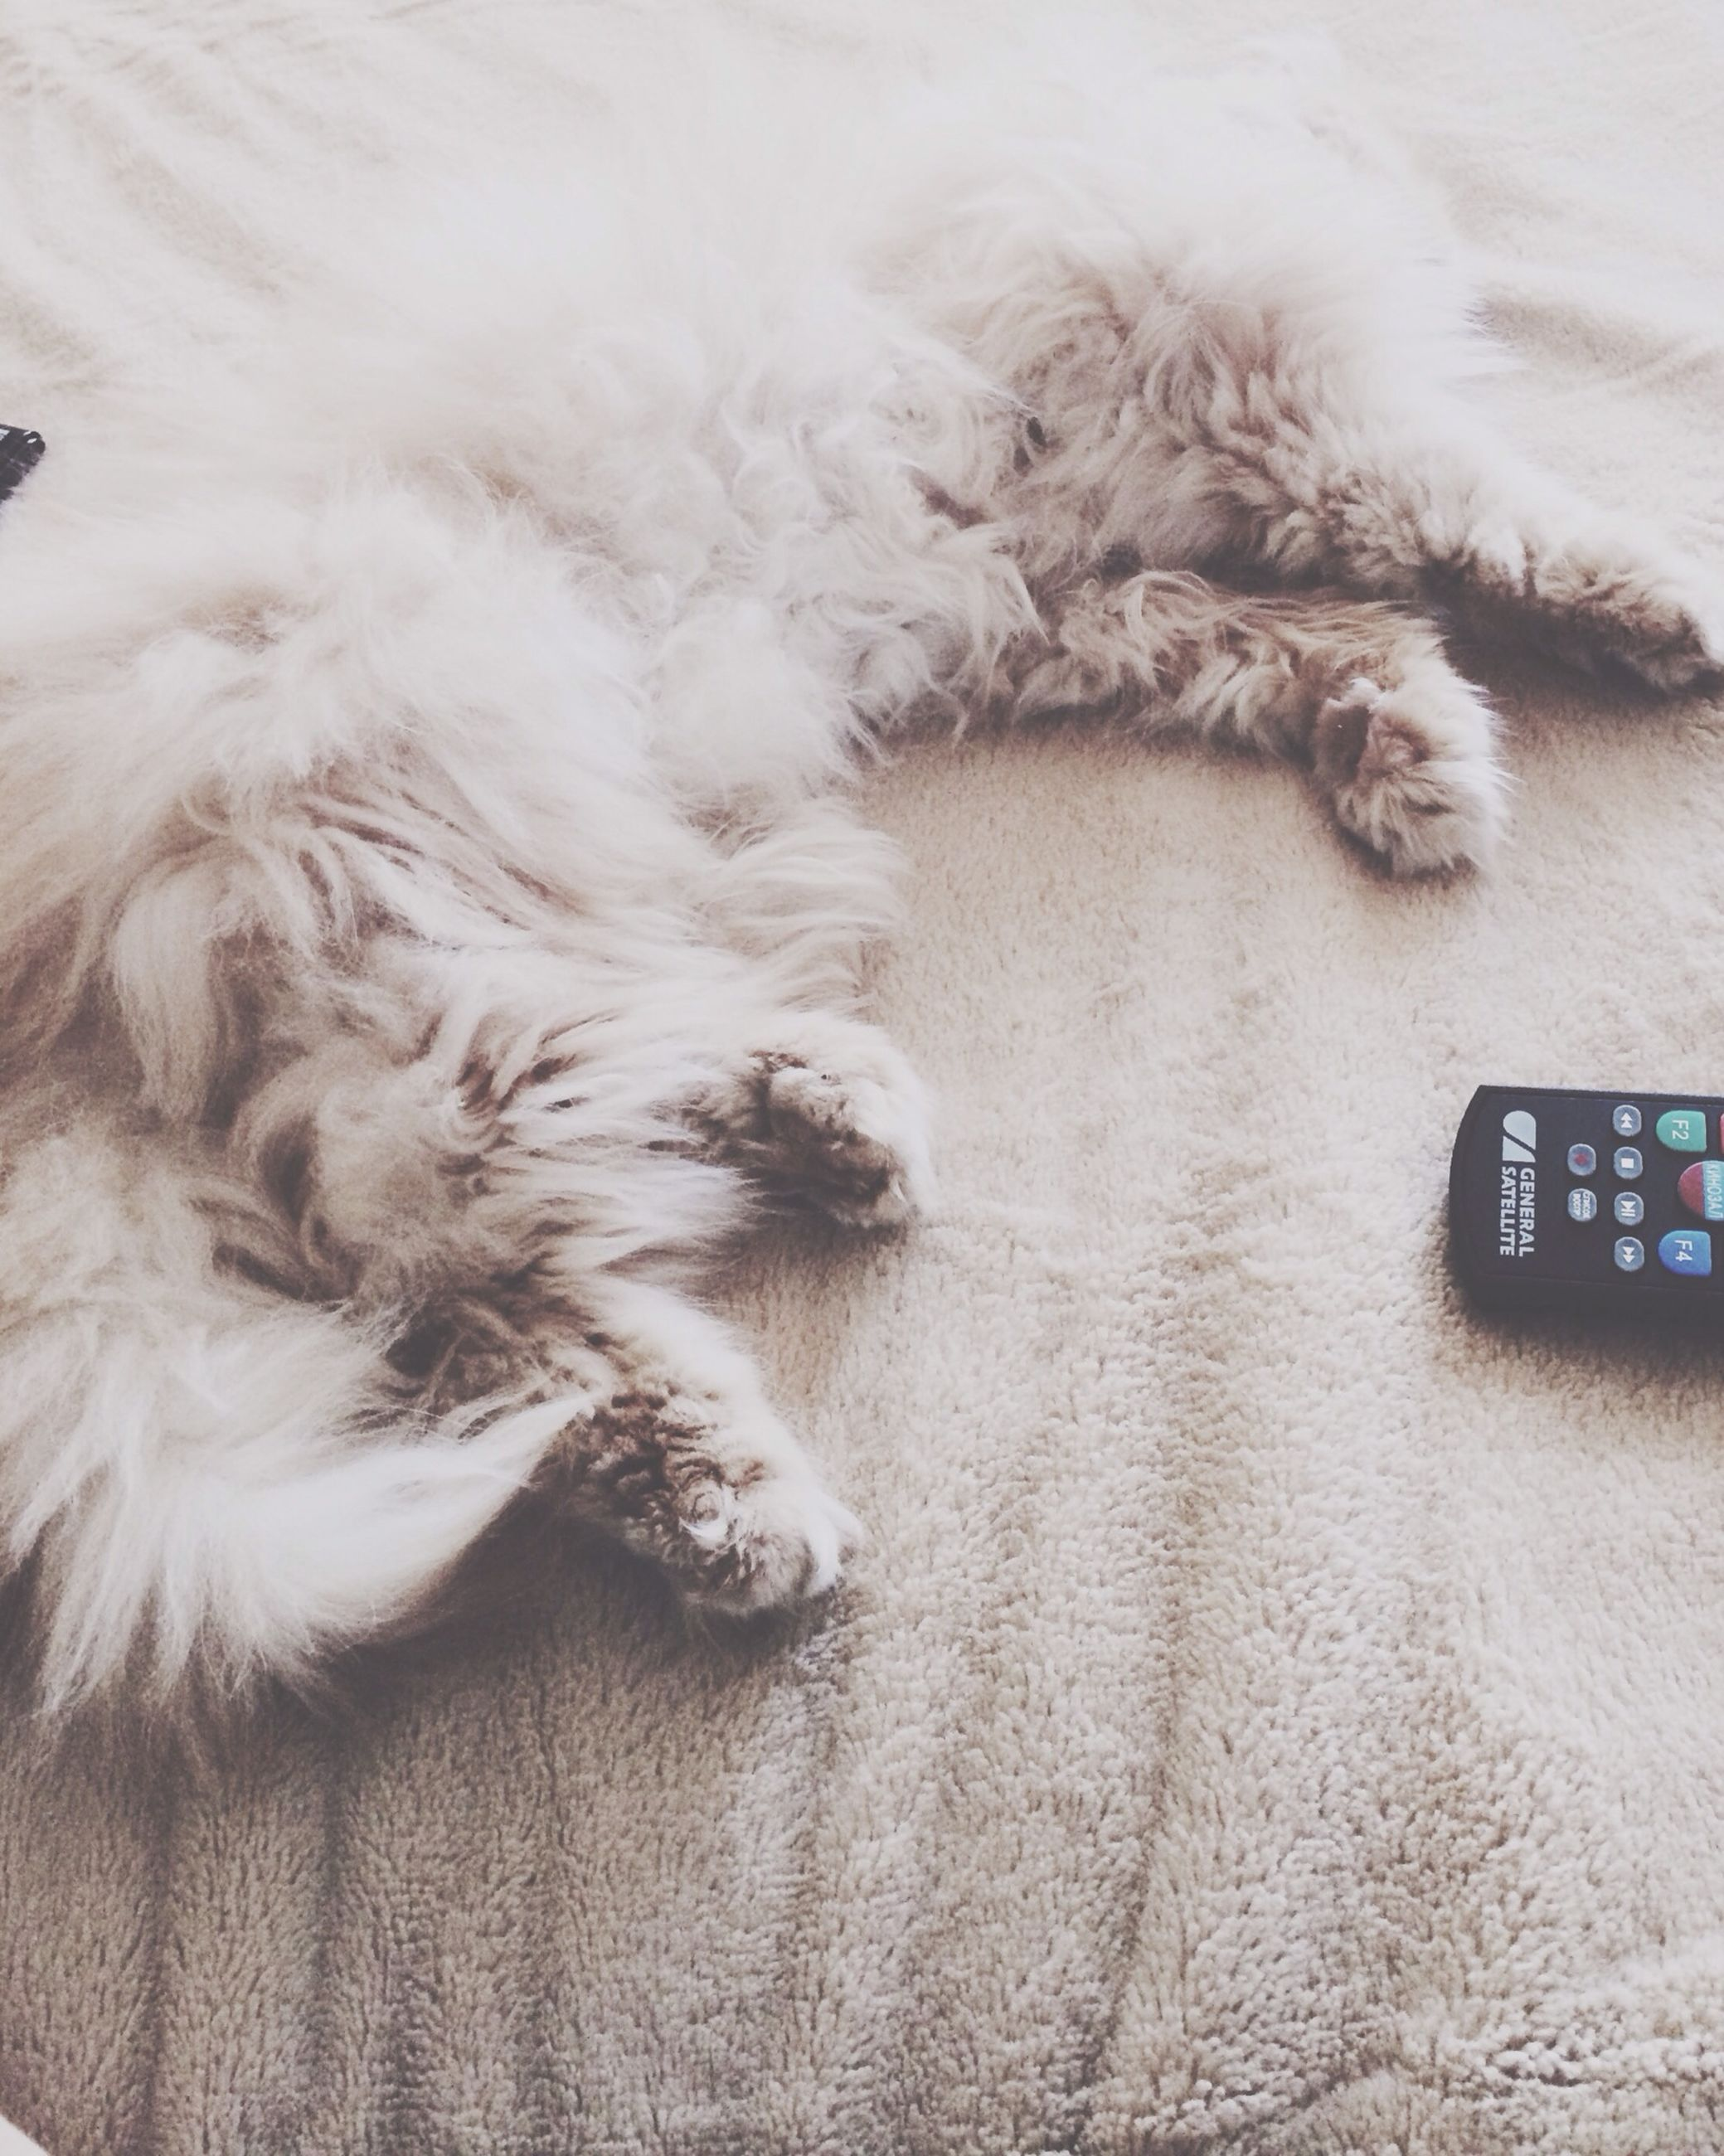 domestic animals, pets, one animal, mammal, animal themes, domestic cat, dog, cat, indoors, high angle view, feline, white color, animal hair, relaxation, no people, lying down, sleeping, resting, close-up, animal head